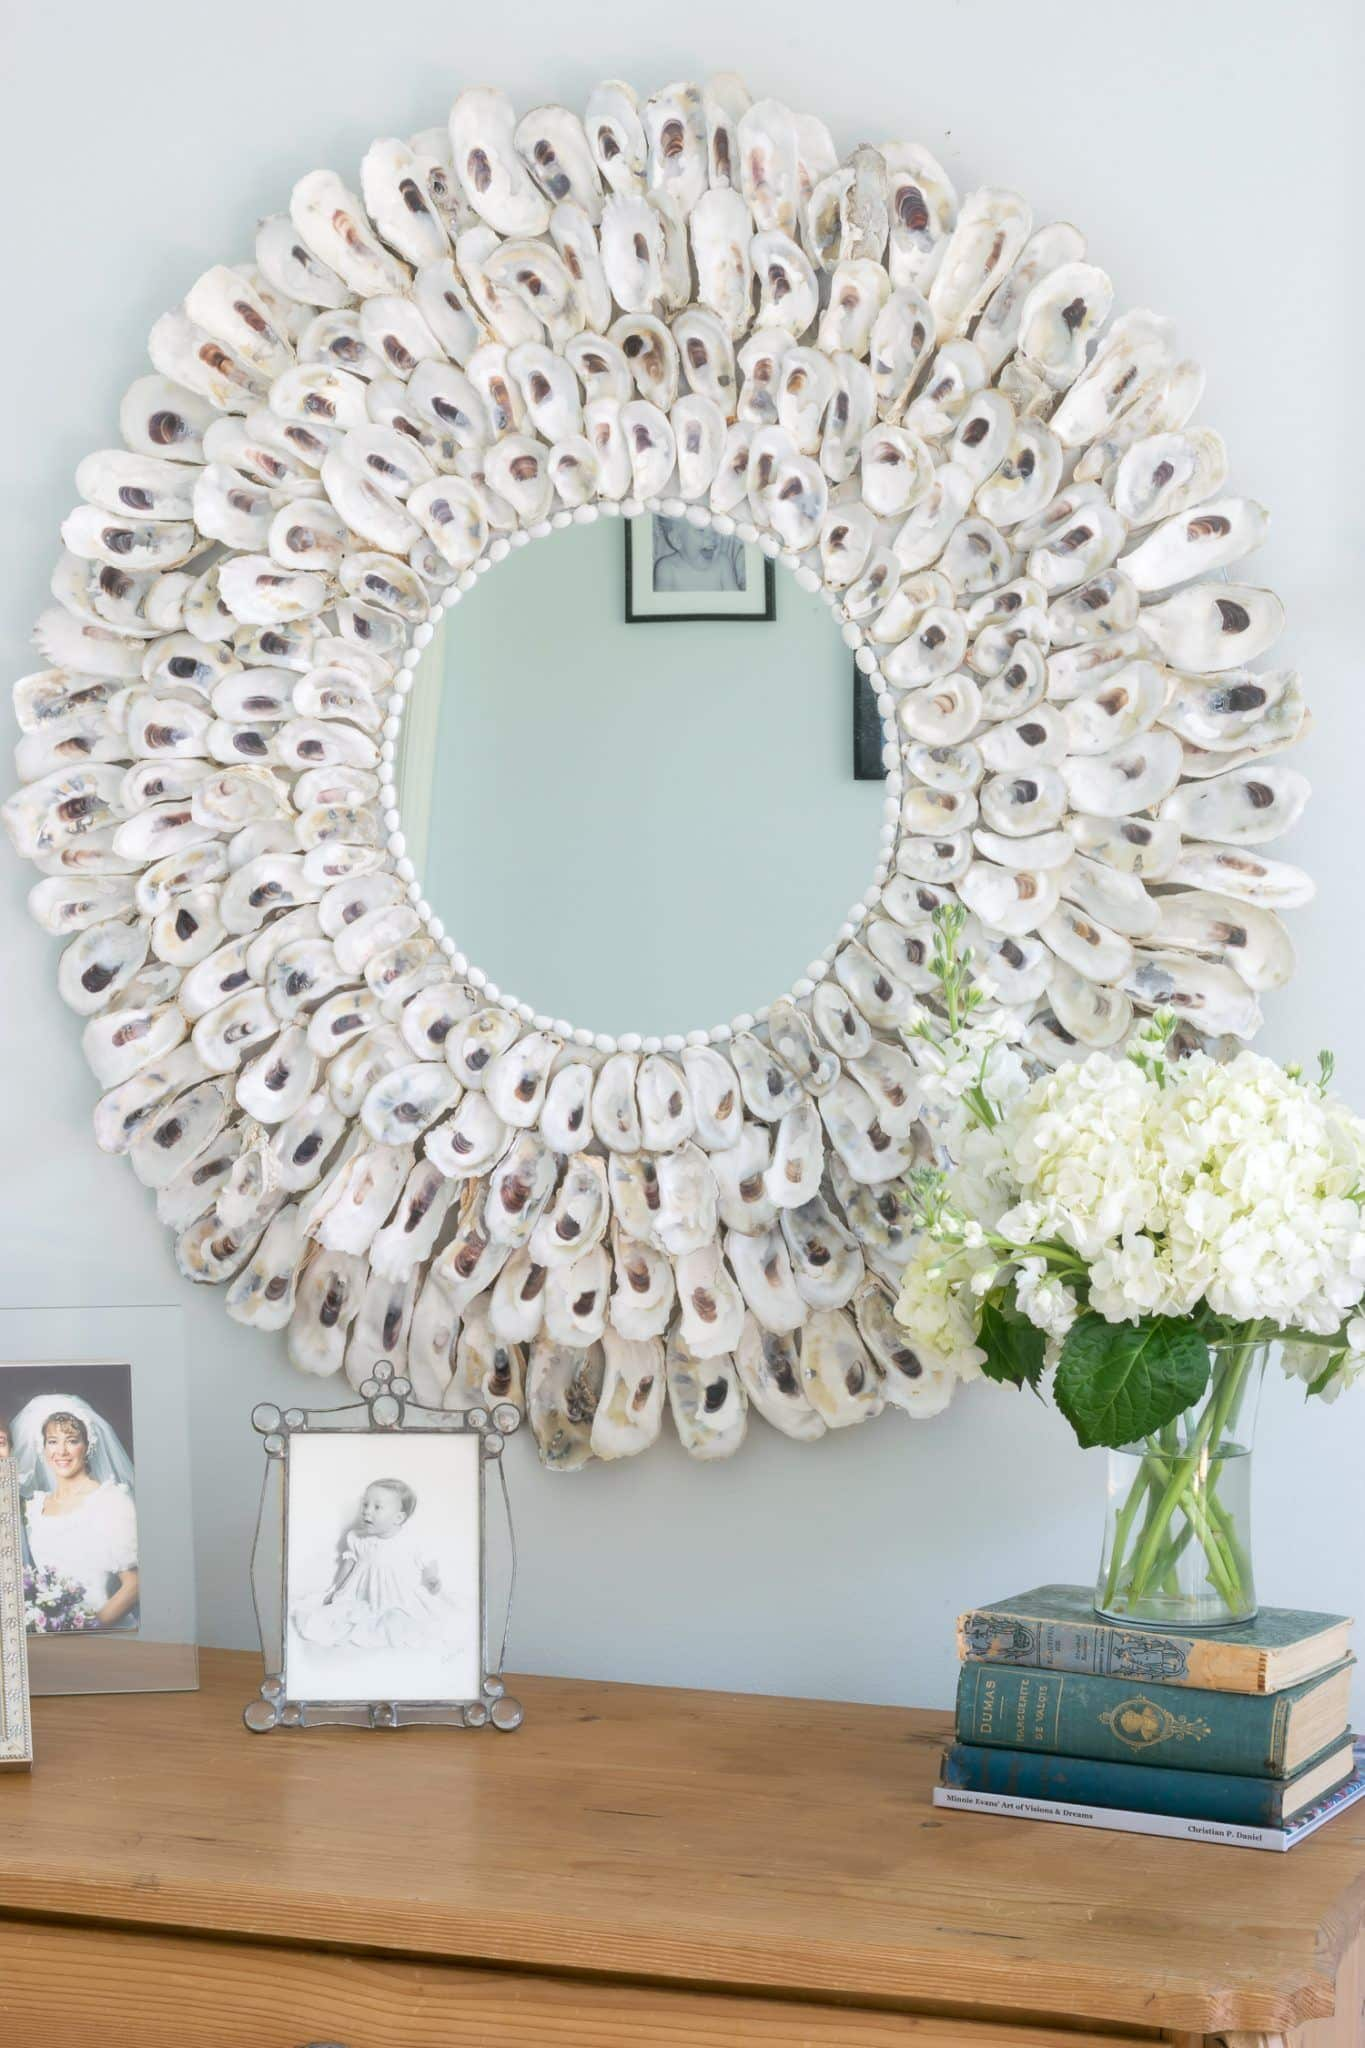 This DIY Oyster Shell Mirror is so easy to make and adds instant charm to your home decor. Not only perfect for coastal decor, but suitable for other decor styles as well.